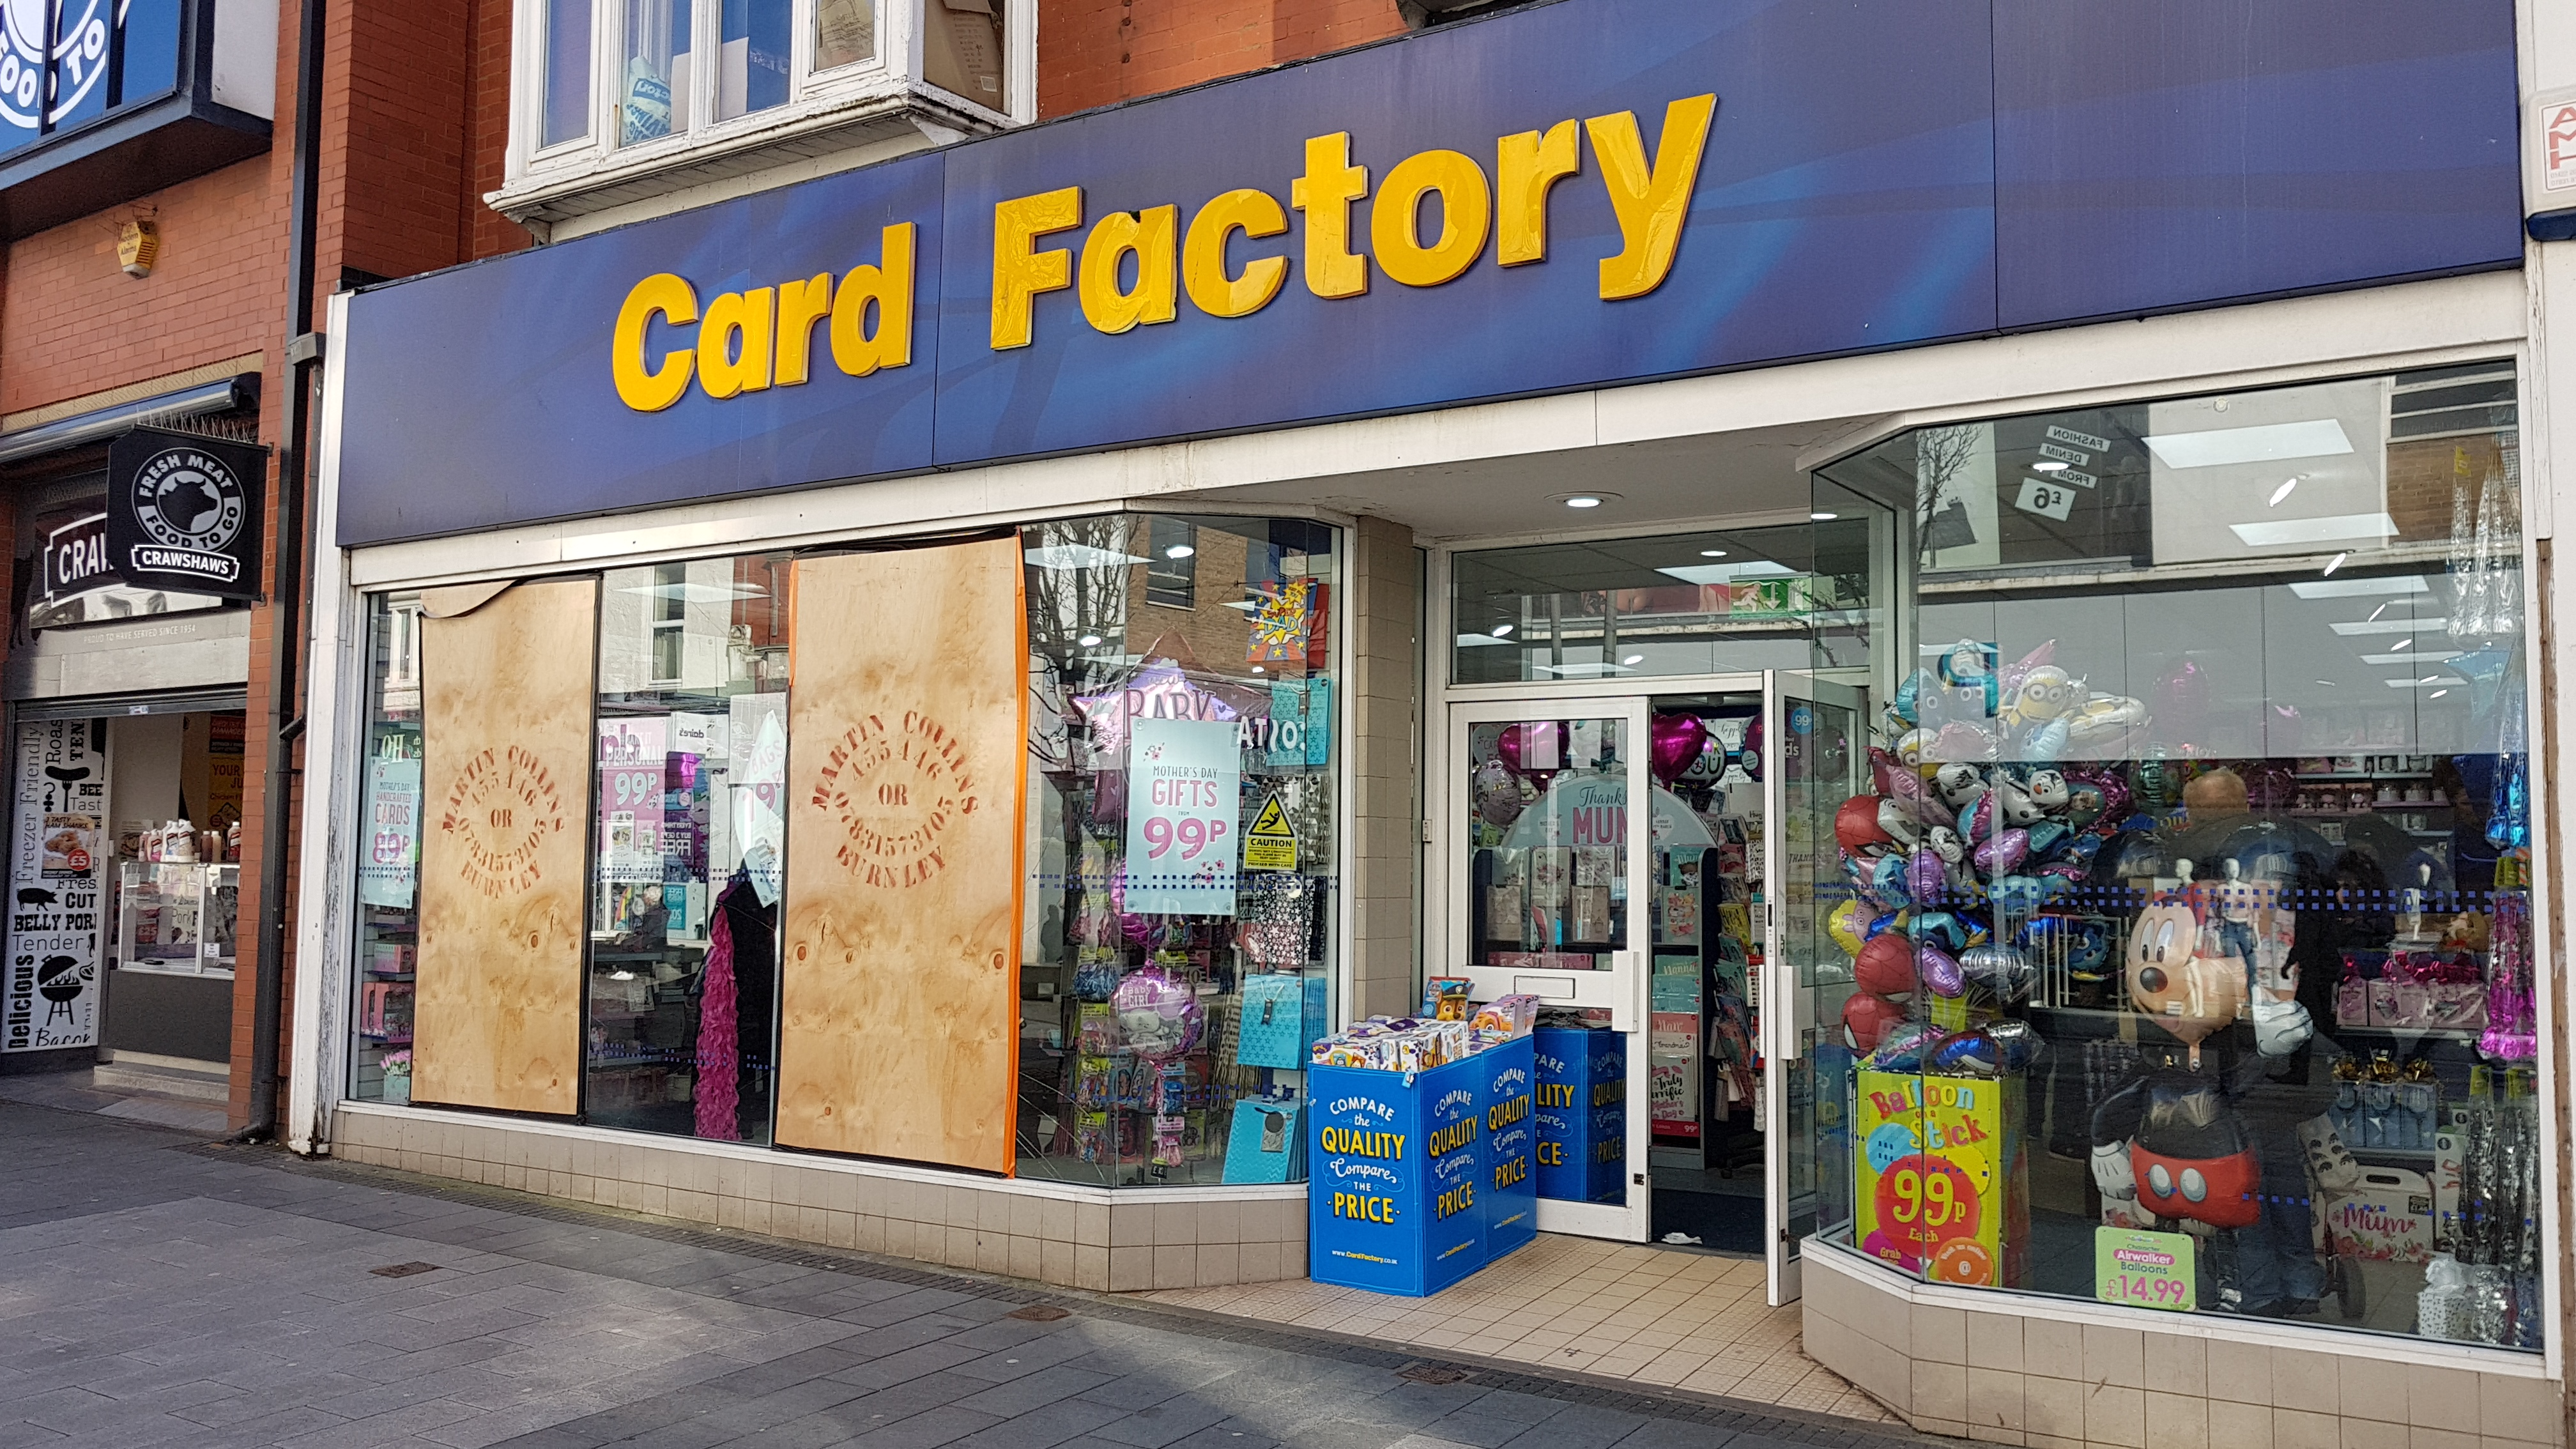 Police are appealing for witnesses after the windows of the Card Factory in Chapel Street were smashed by mindless idiots last night.    Anyone with information is asked to call Merseyside police on 101 or Crimestoppers on 0800 555 111.